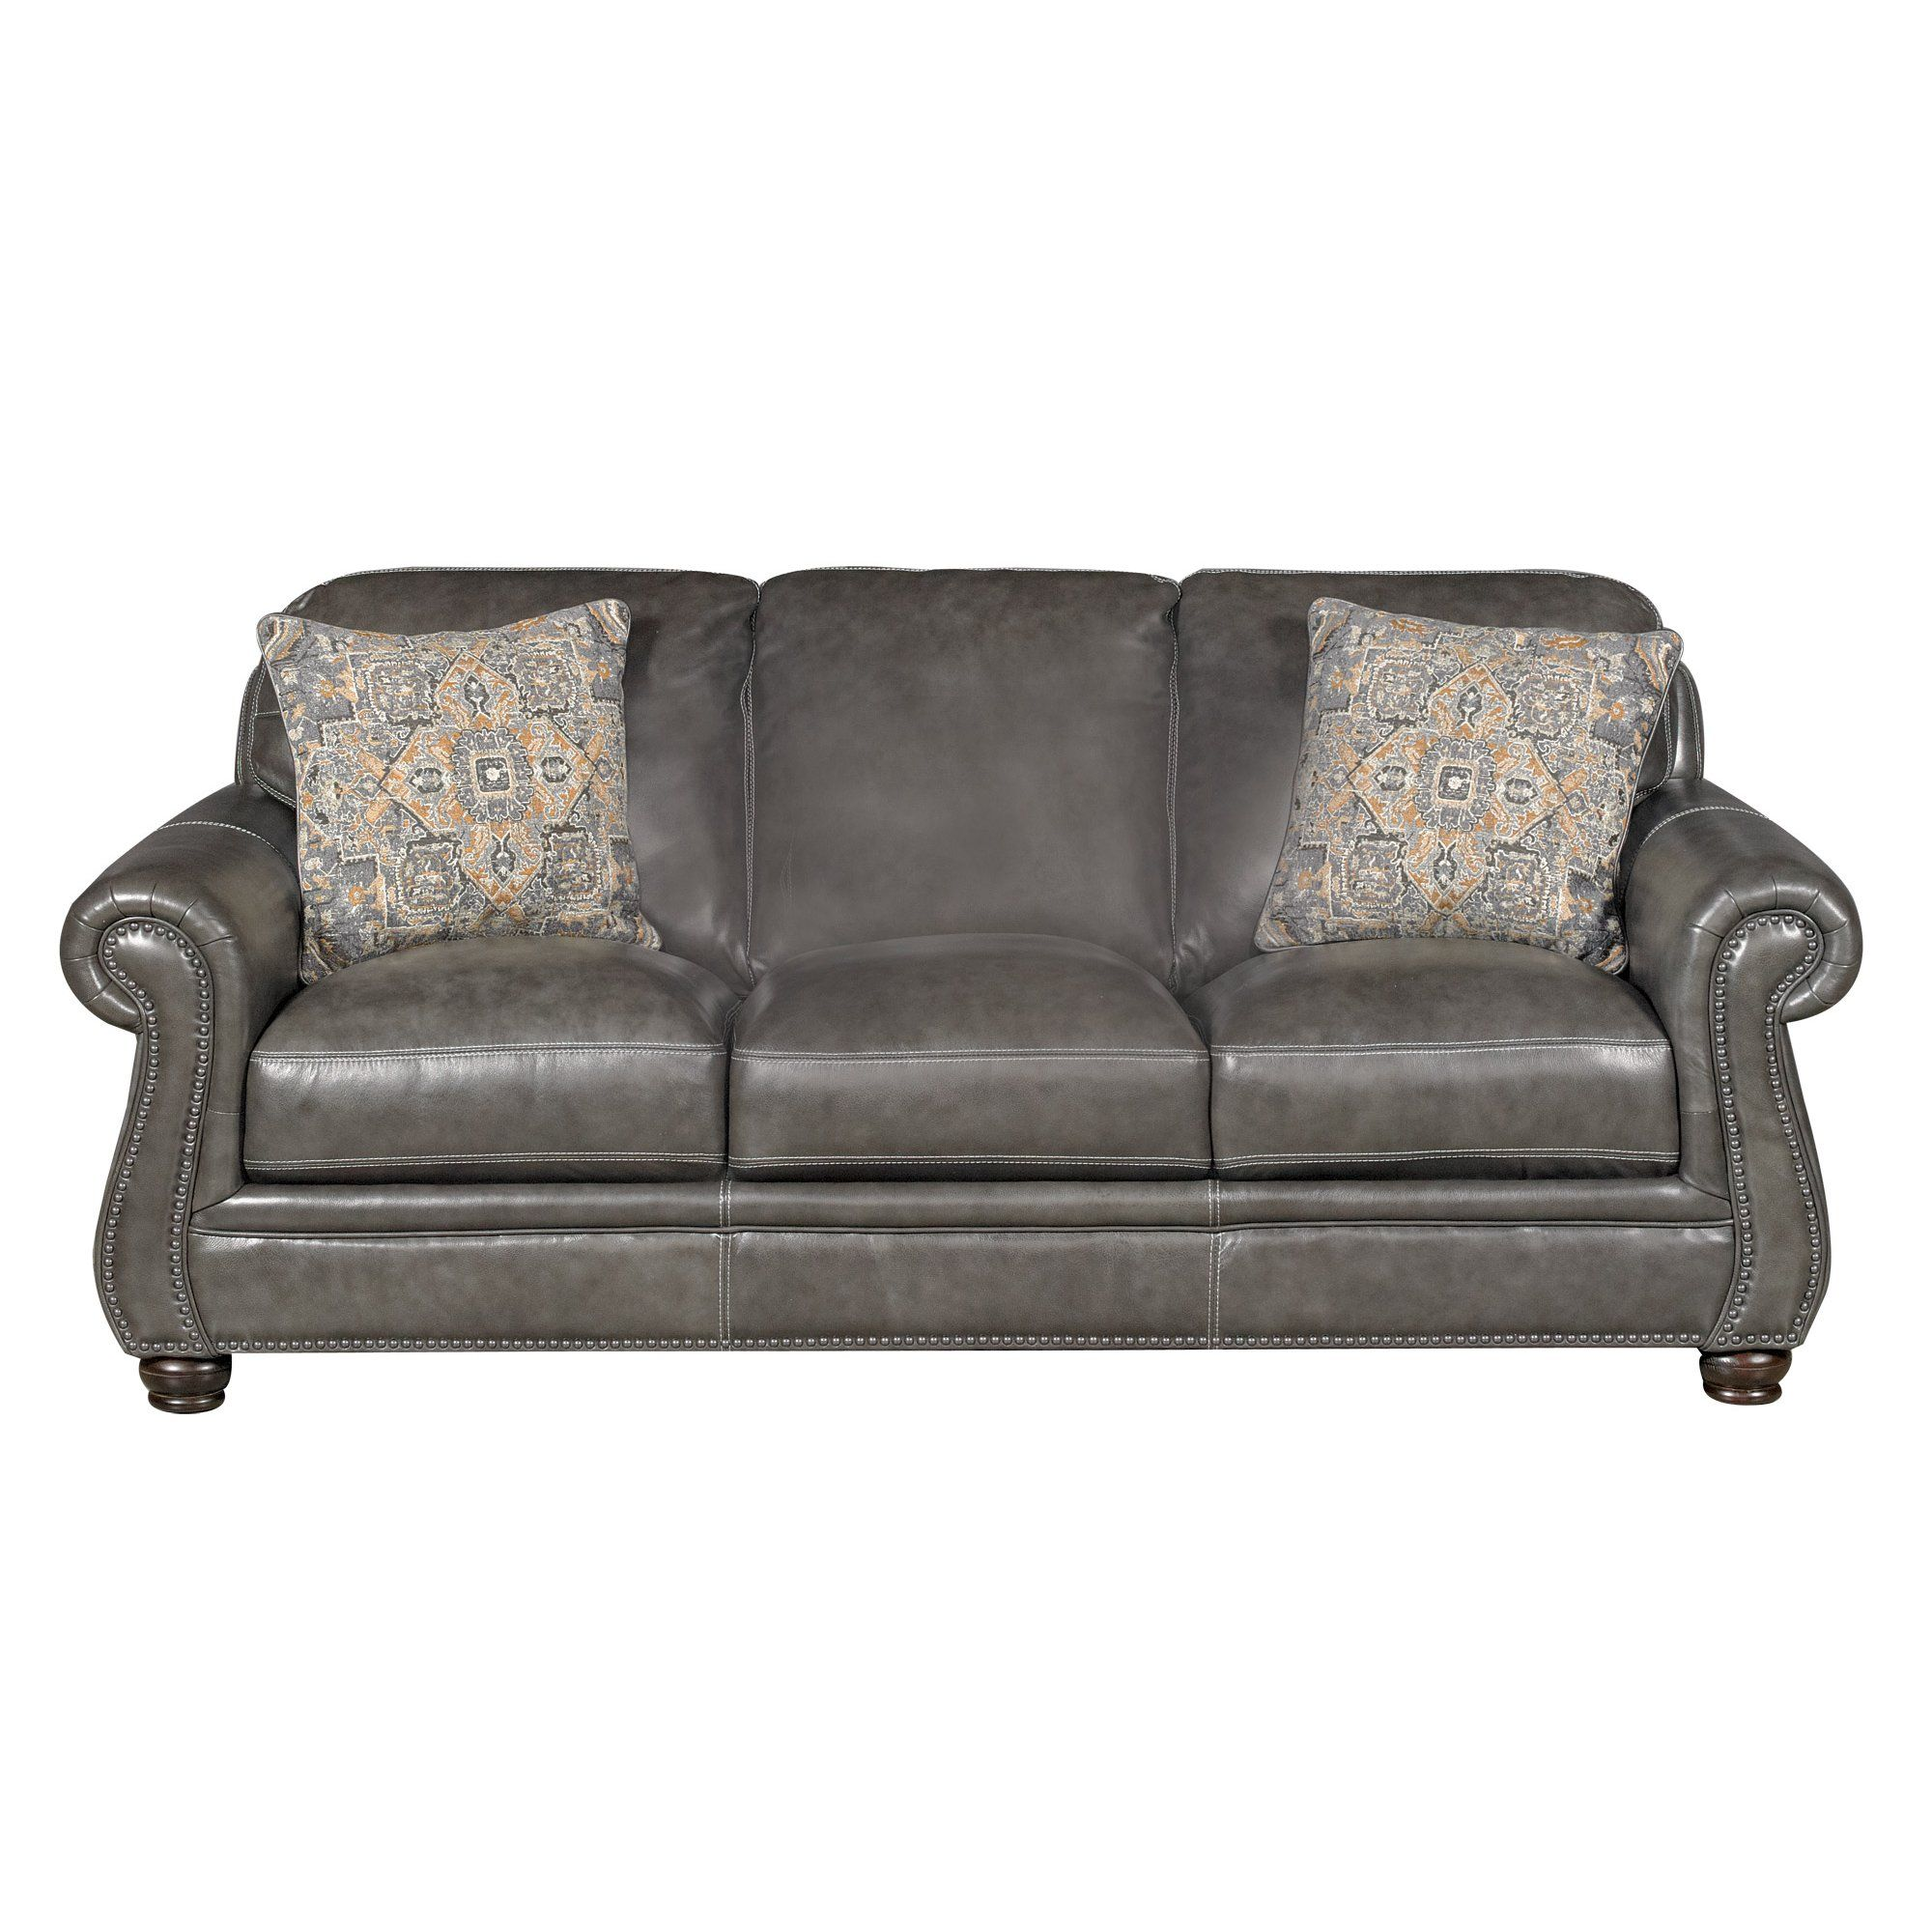 Best Classic Traditional Charcoal Gray Leather Sofa London 640 x 480